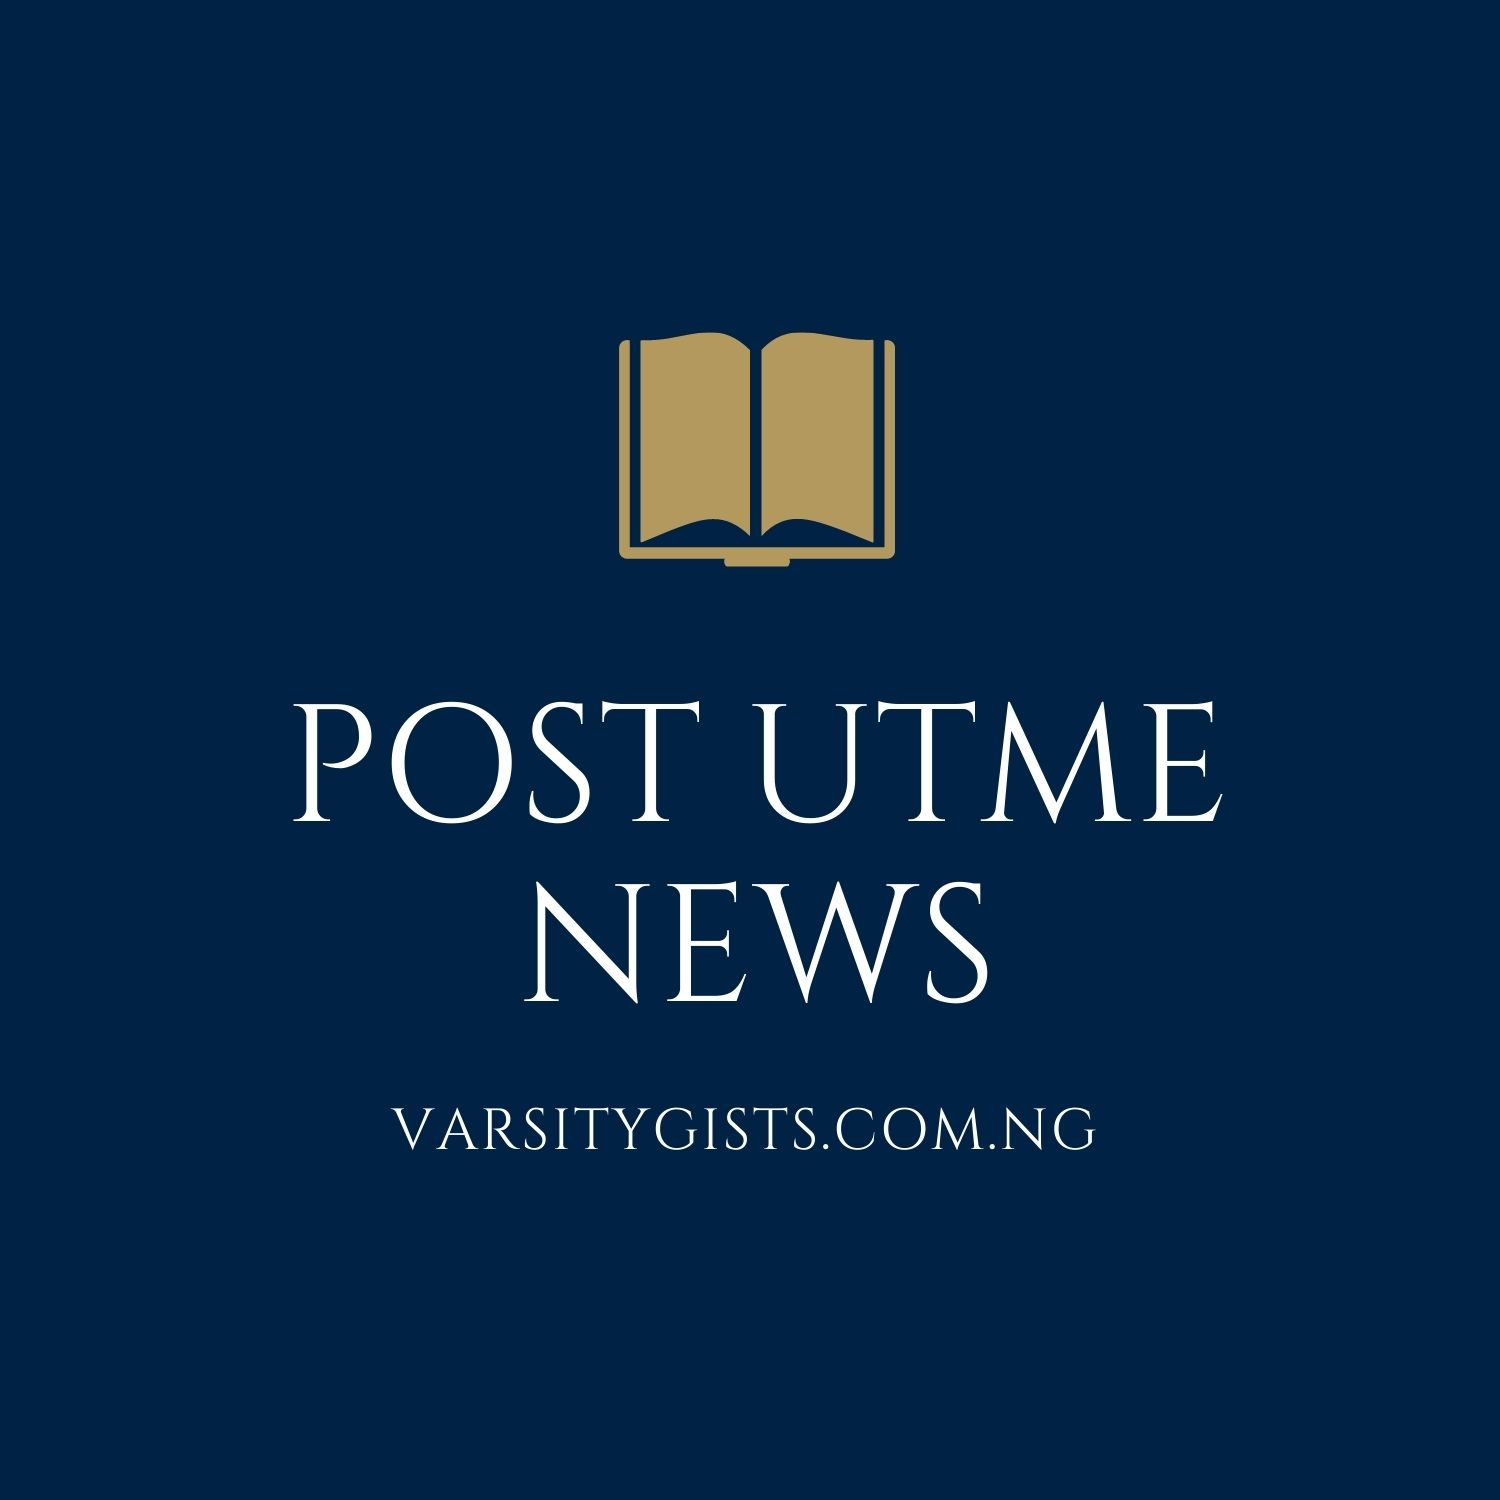 POST-UTME 2020: List of Colleges of Education That Have released Post-UTME Forms